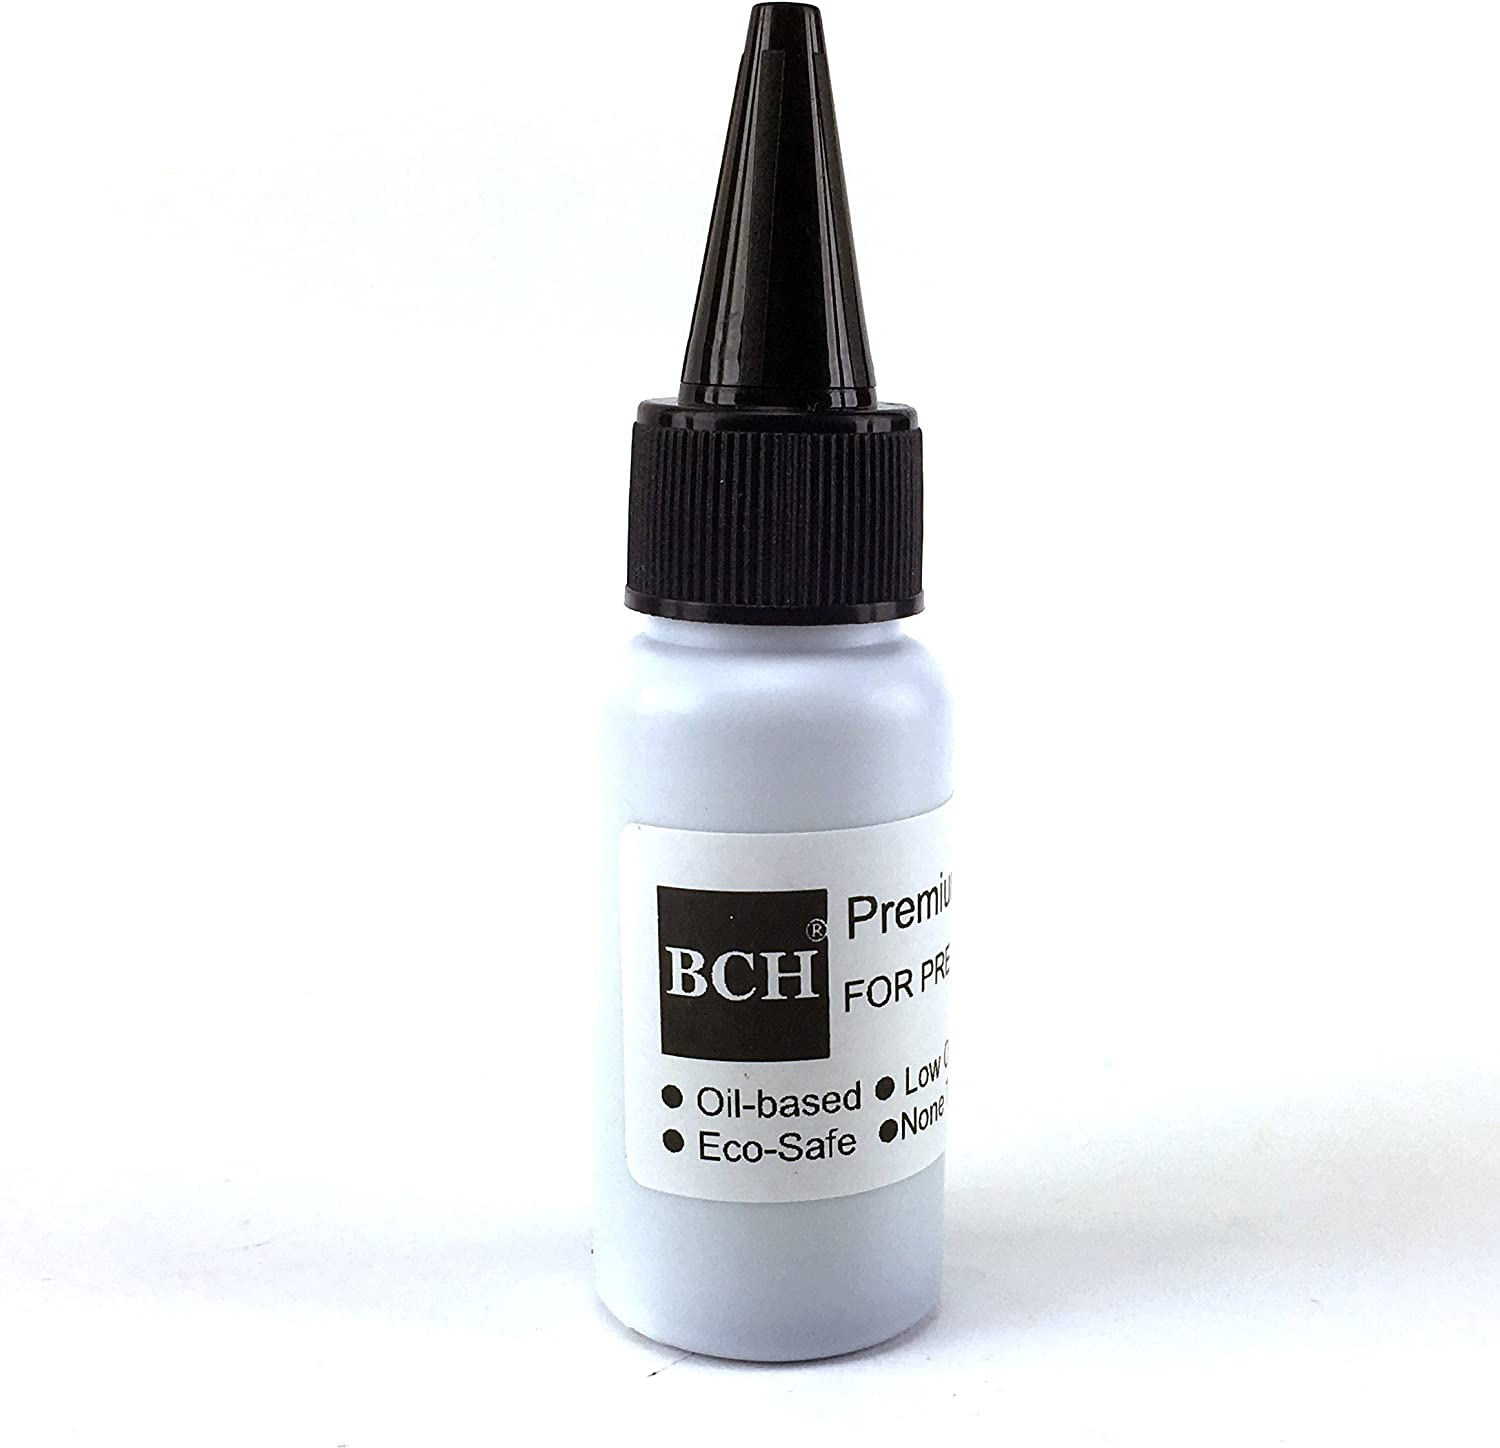 Black Stamp Refill Ink by BCH - Oil-Based for Roller Stamp or Pre-Inked Rubber Gel Pads - 20ml Bottle